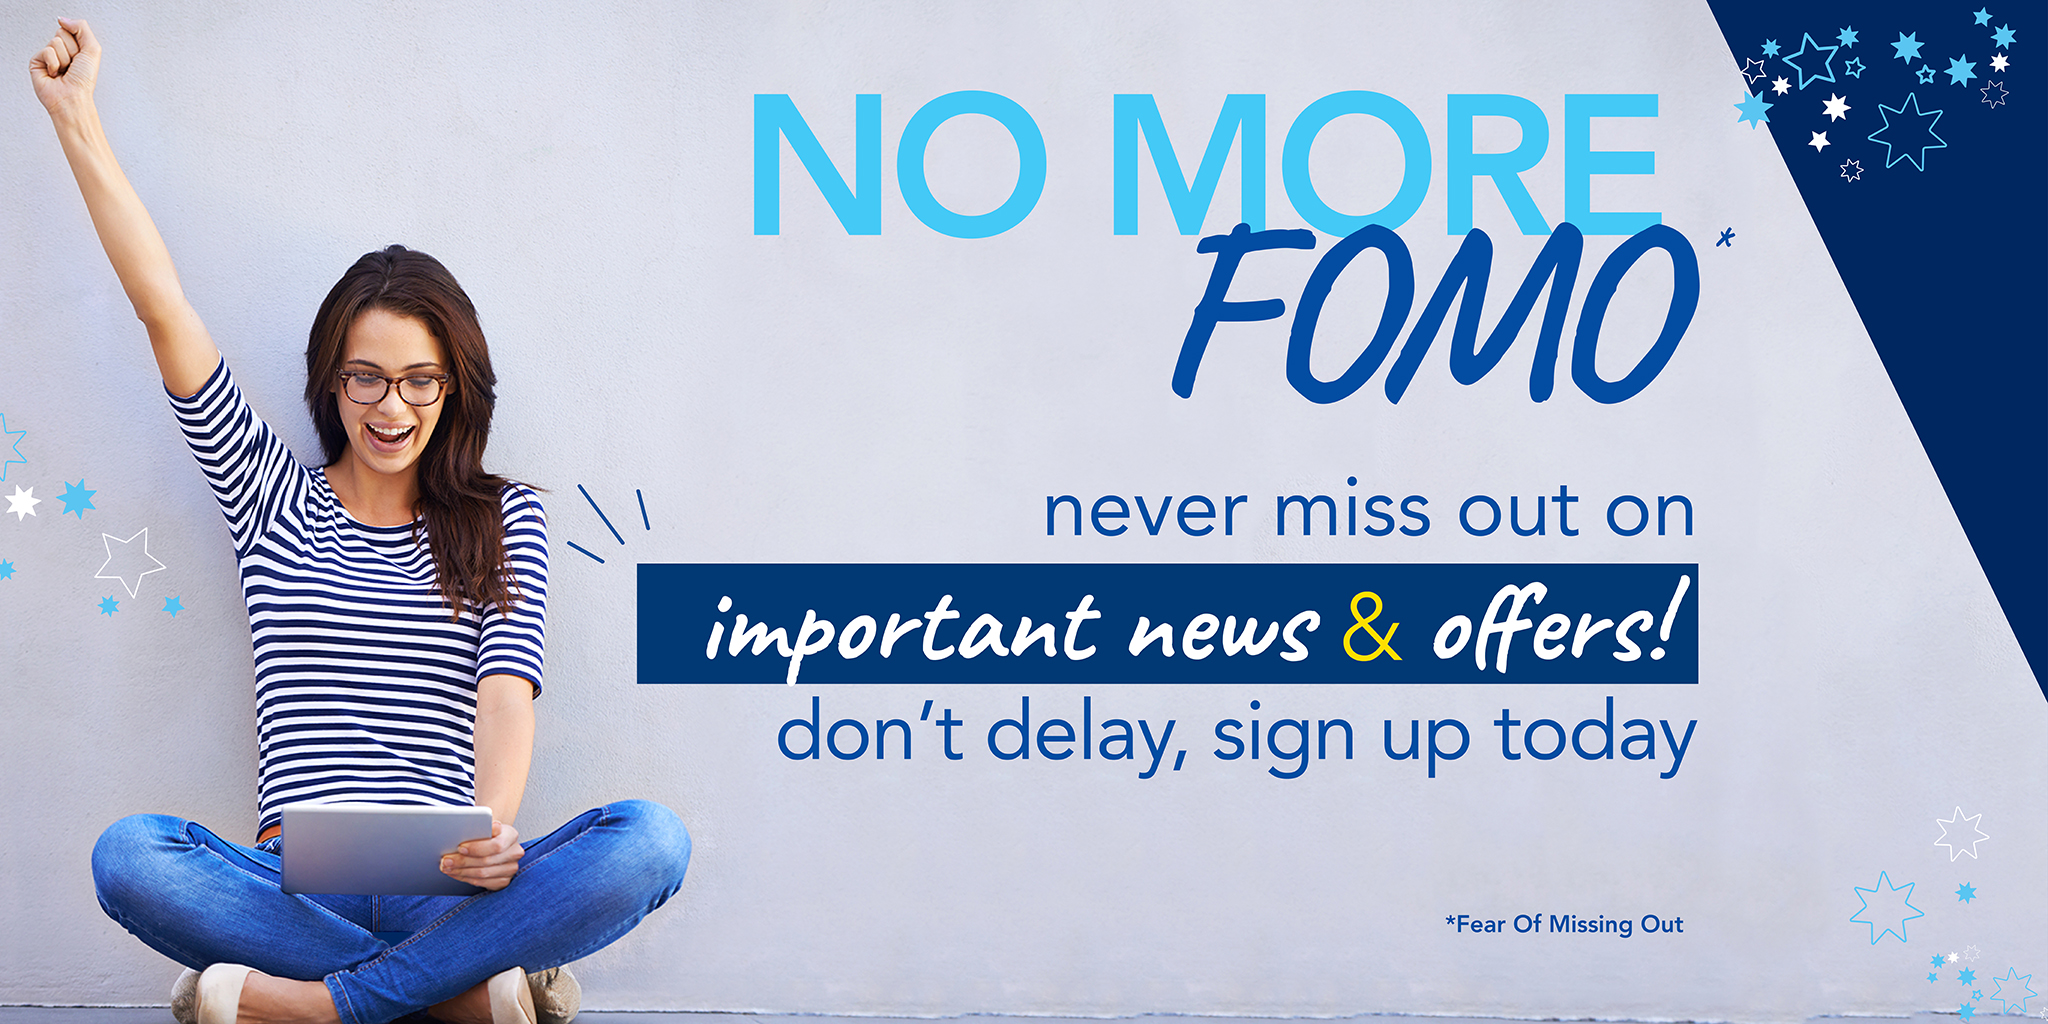 No more FOMO - Never miss out on important news and offers